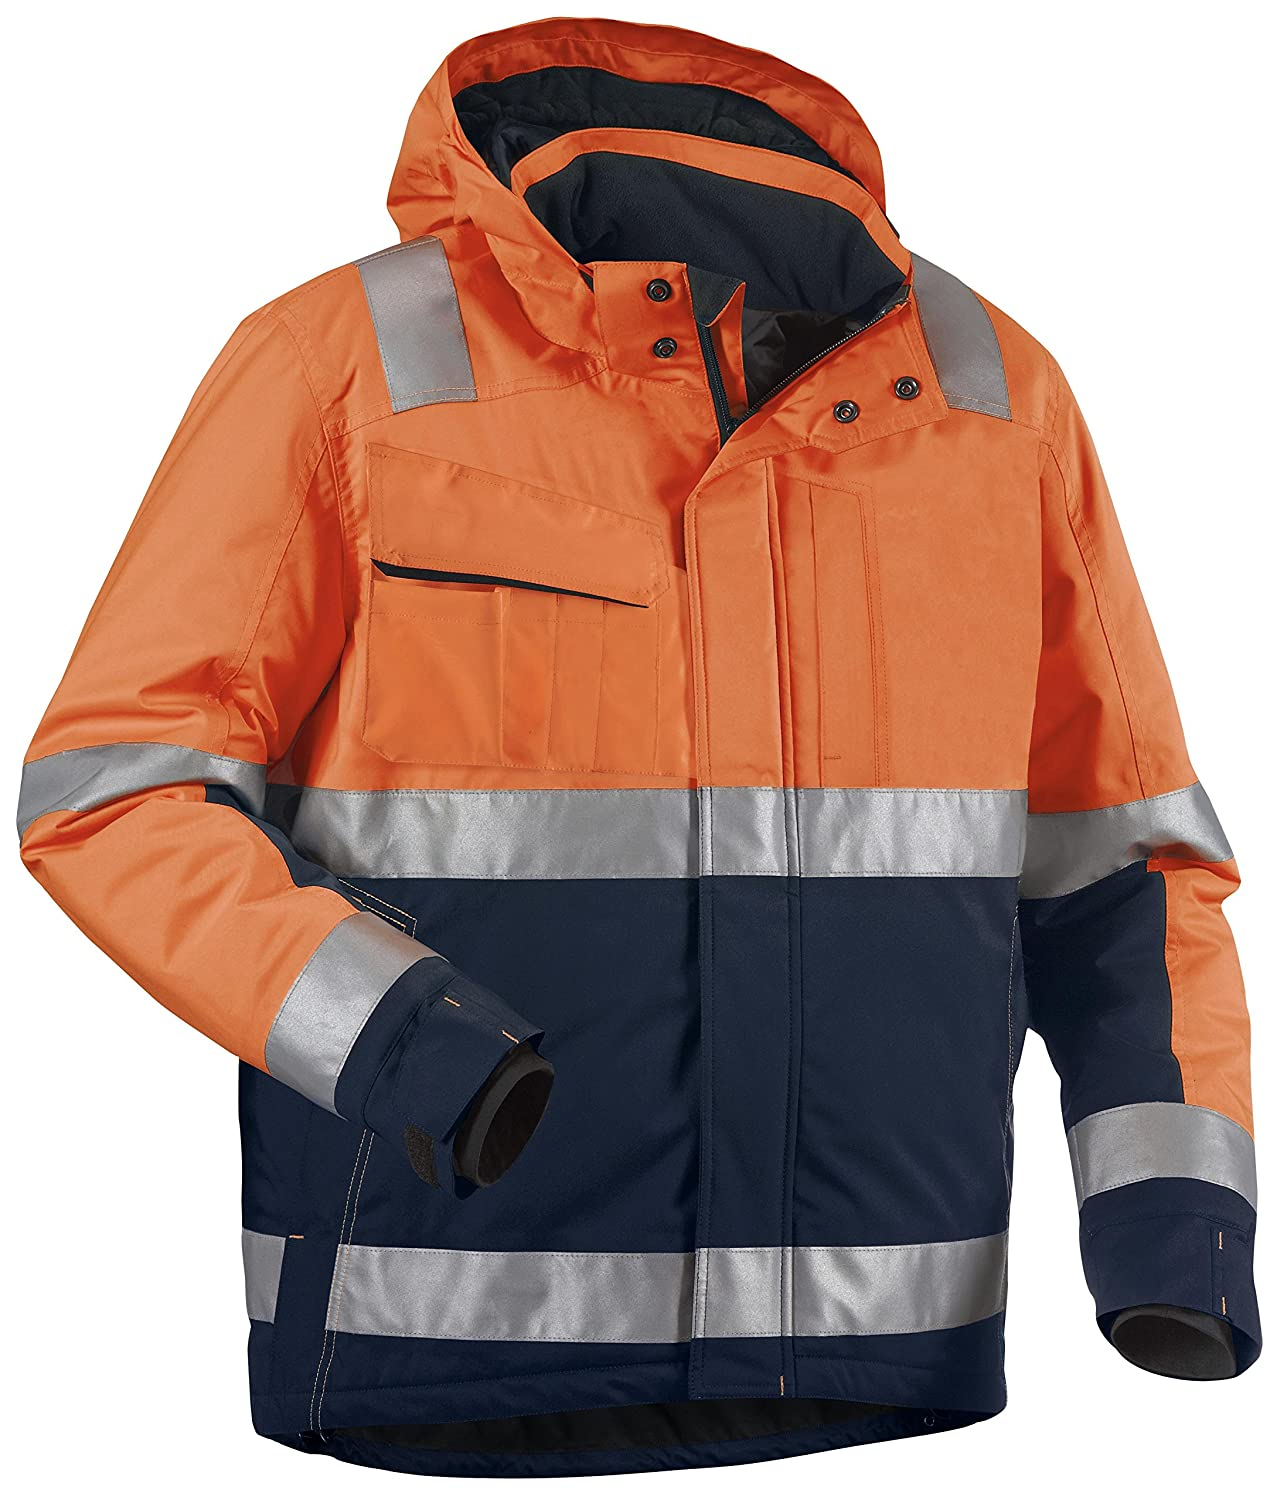 Blakläder High Vis Winter Bundjacke Kl. 3 Orange/Marineblau, 4870 1987 5389, Gr. XS